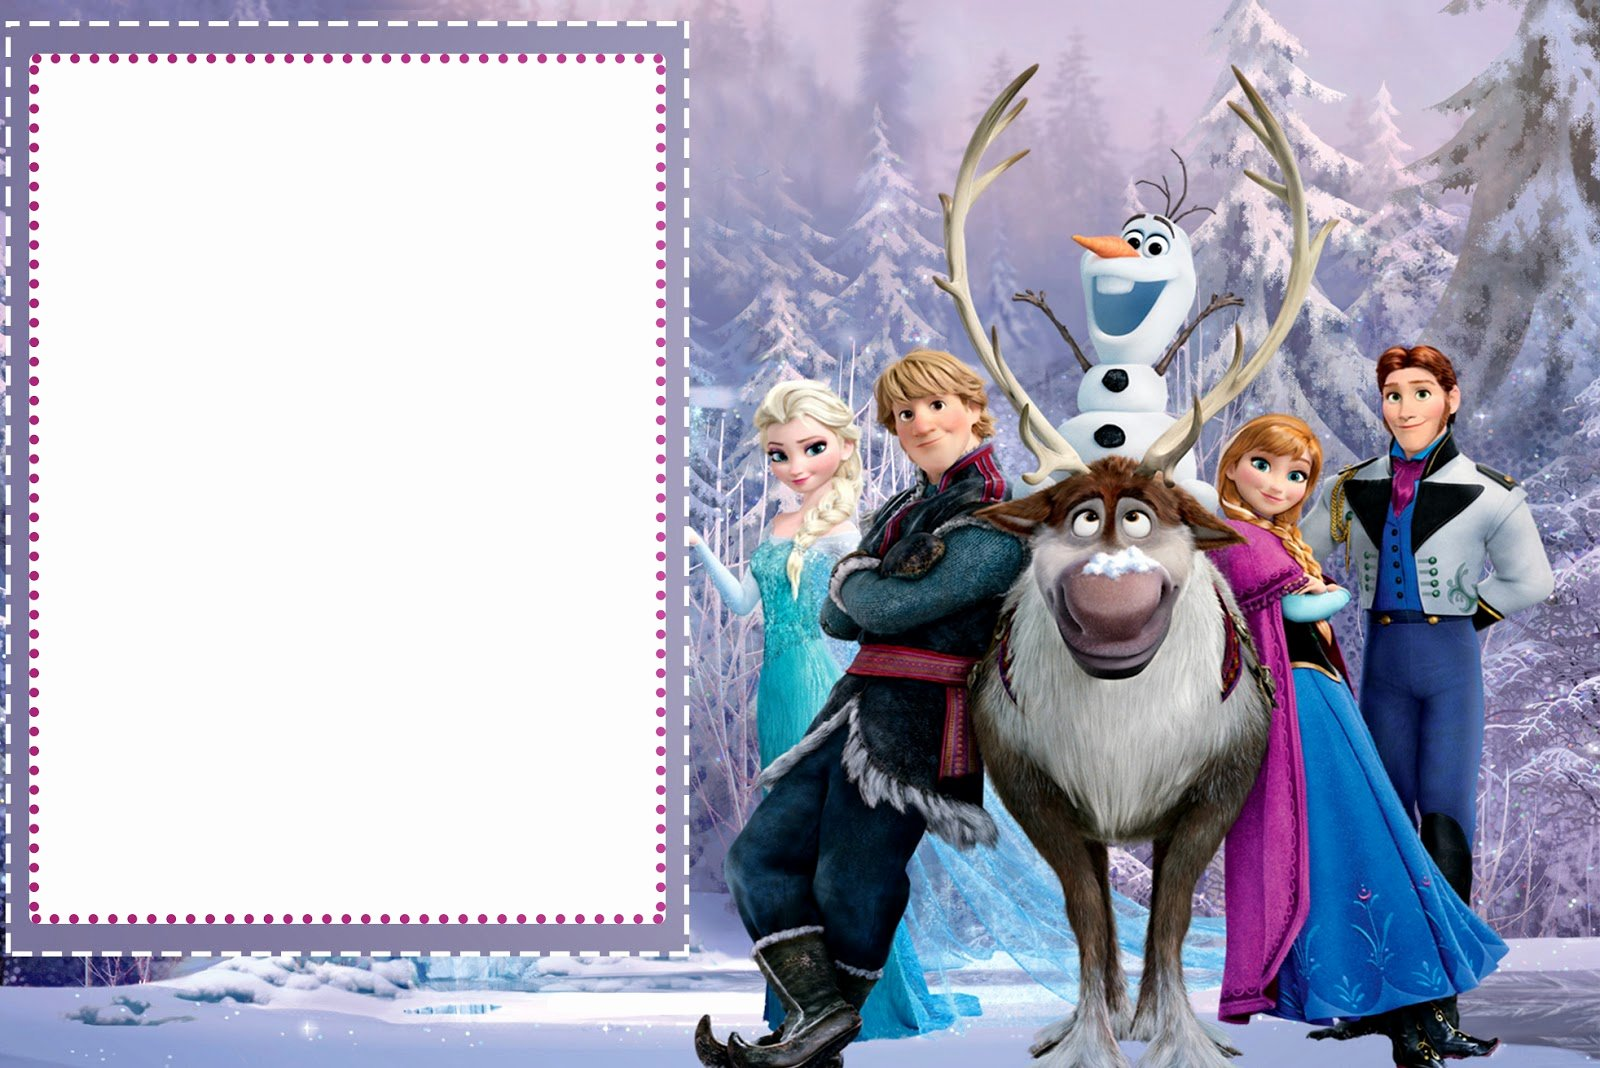 Free Frozen Invitations Template Unique Frozen Free Printable Cards or Party Invitations Oh My